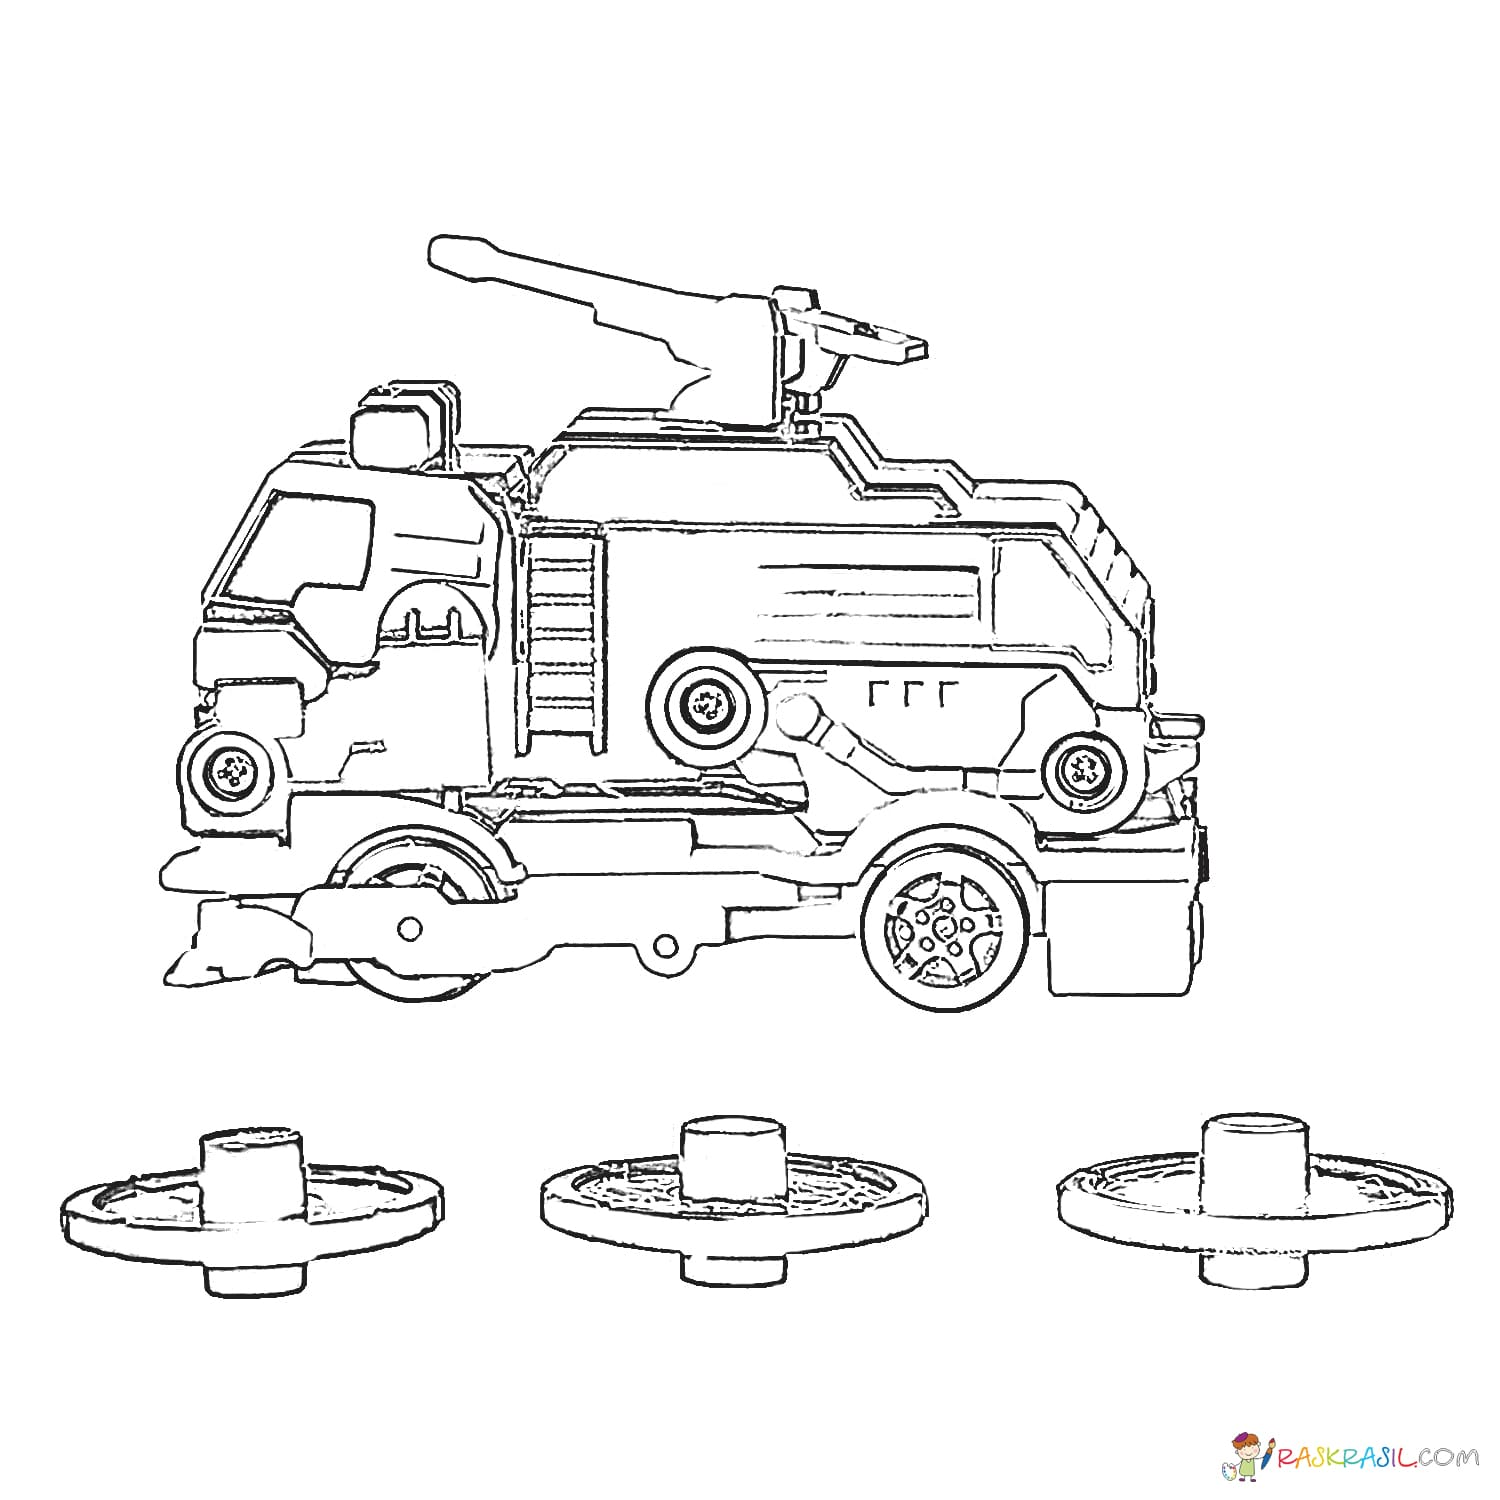 Wild Screechers Coloring pages. Transformers print